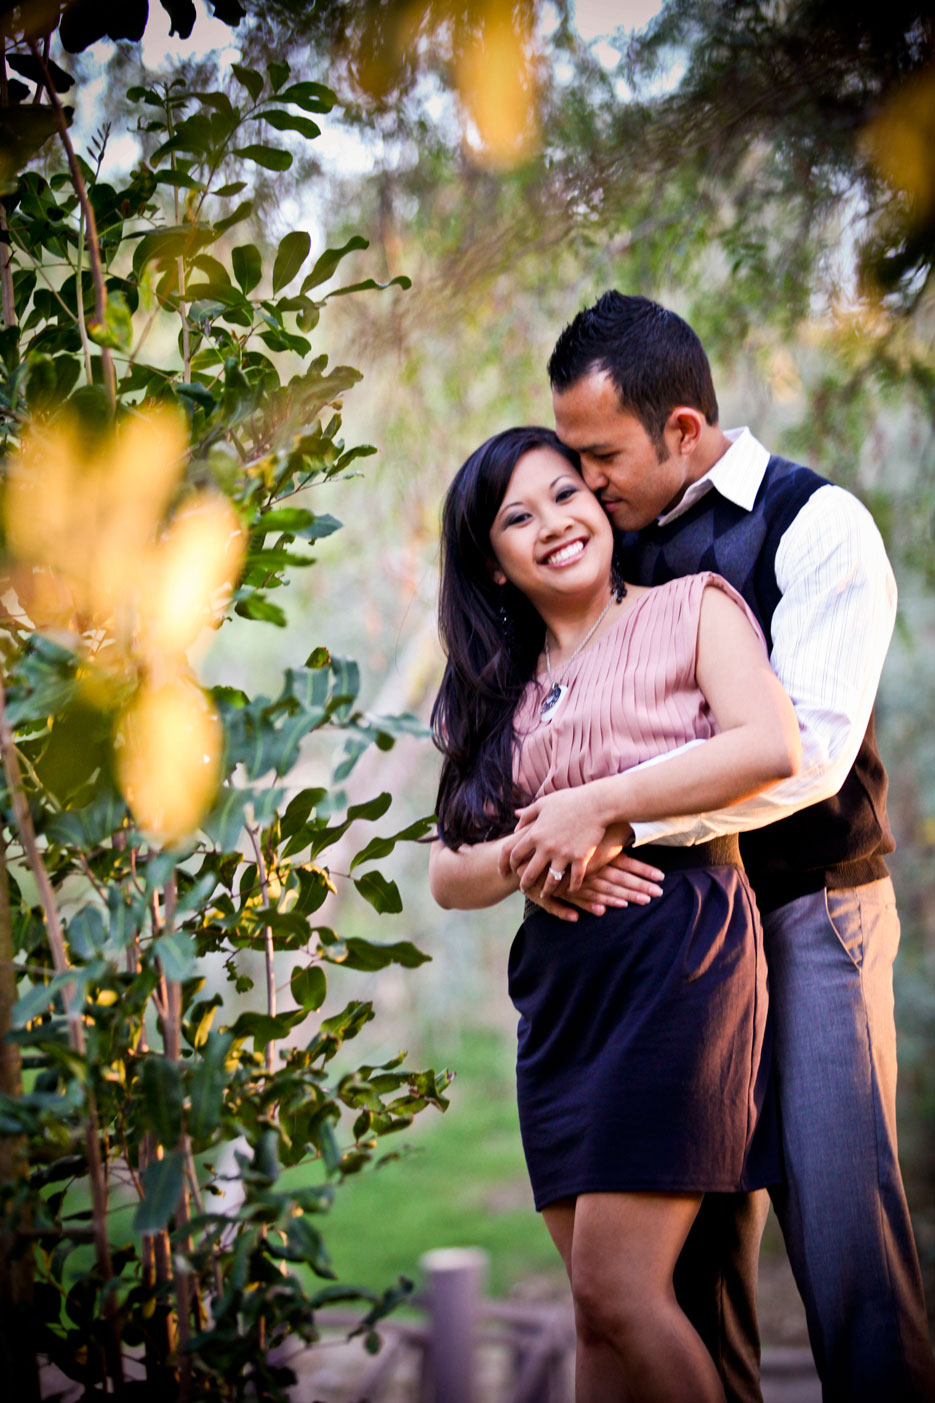 Our Engagement 3 2012 4 Engagement Shoot at the Park, Orange County